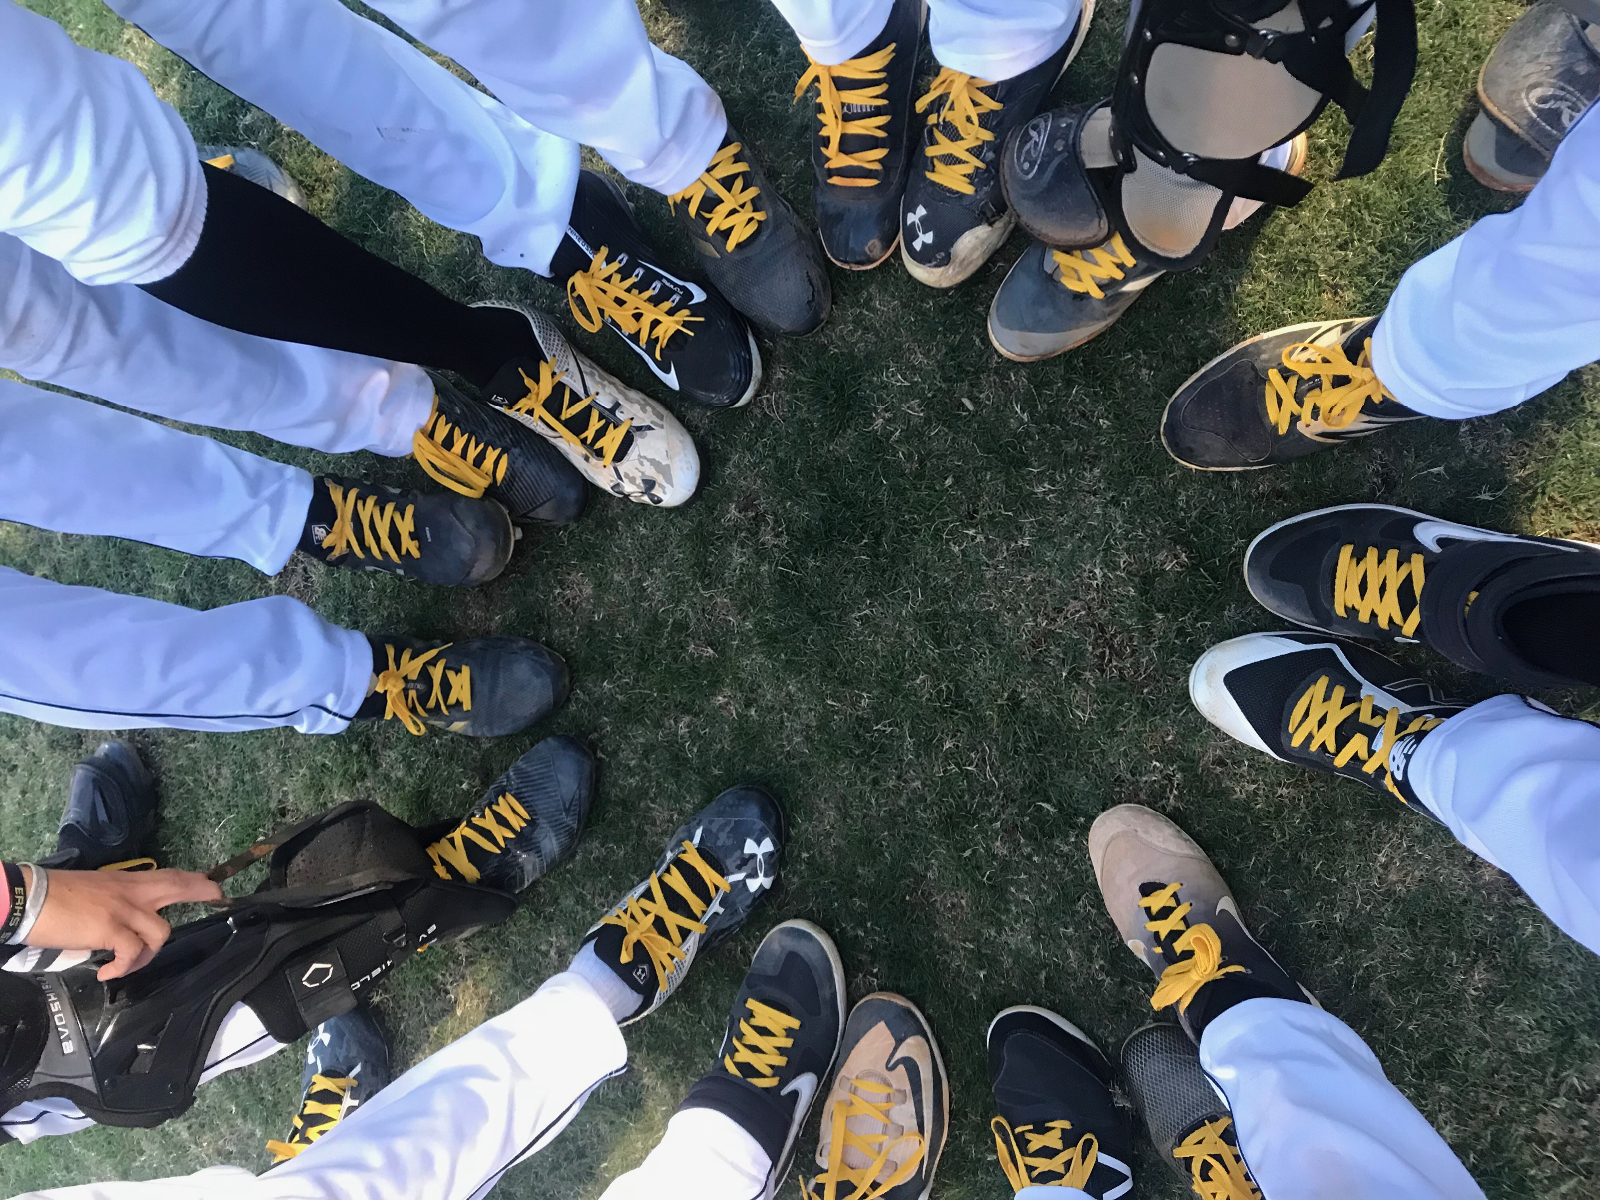 Lake Minneola and East Ridge team up to raise money for childhood cancer